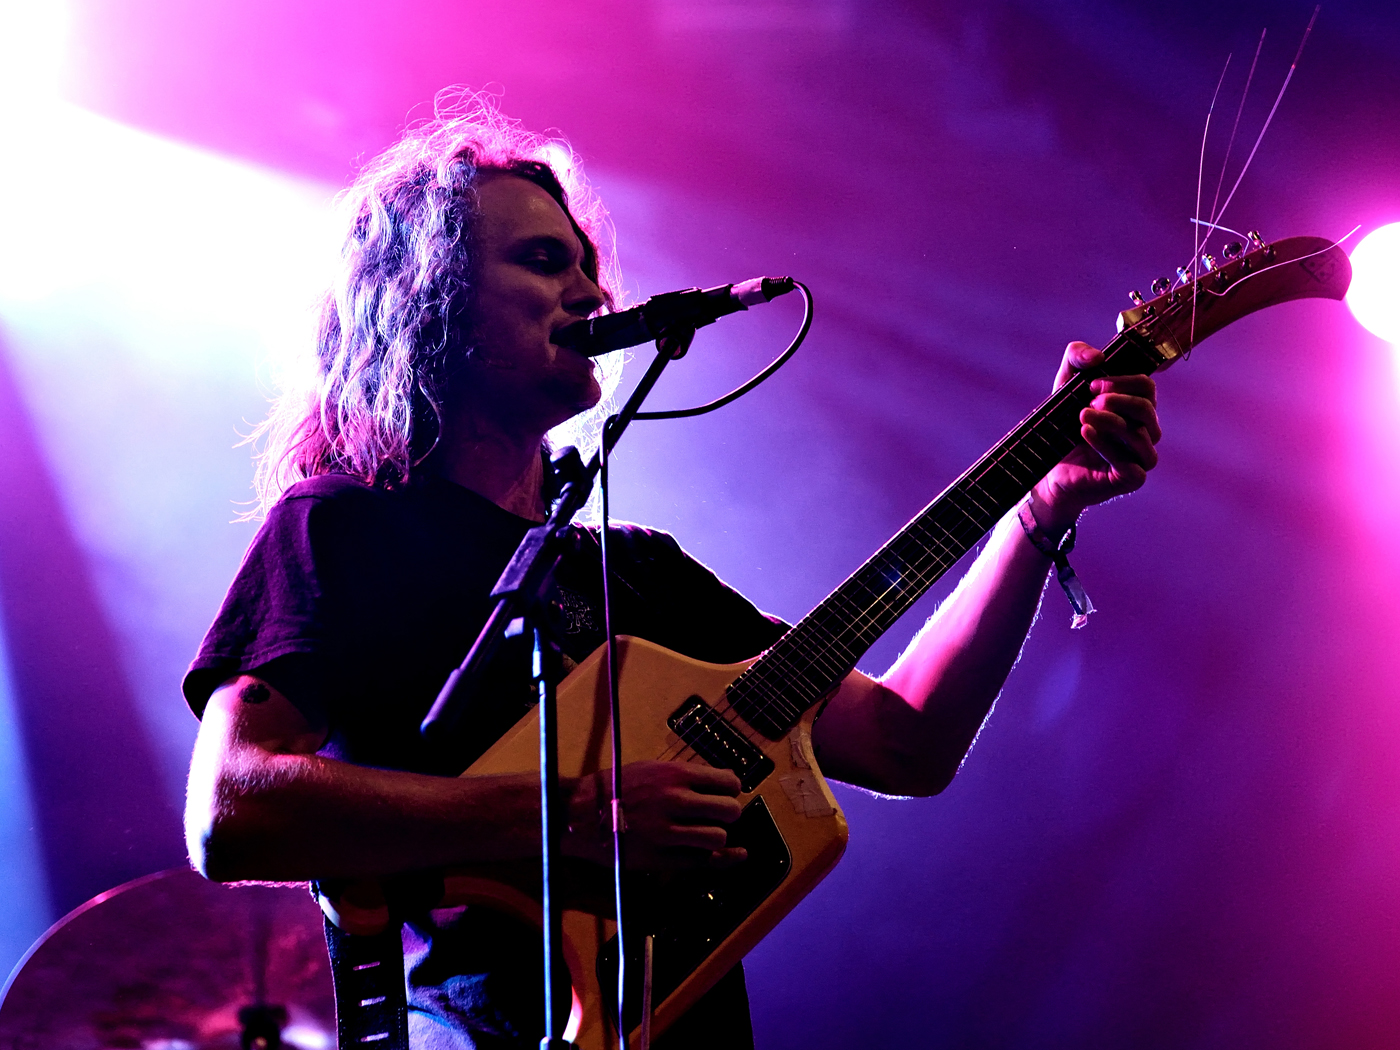 King Gizzard And The Lizard Wizard release third live album to fundraise for Australian wildlife